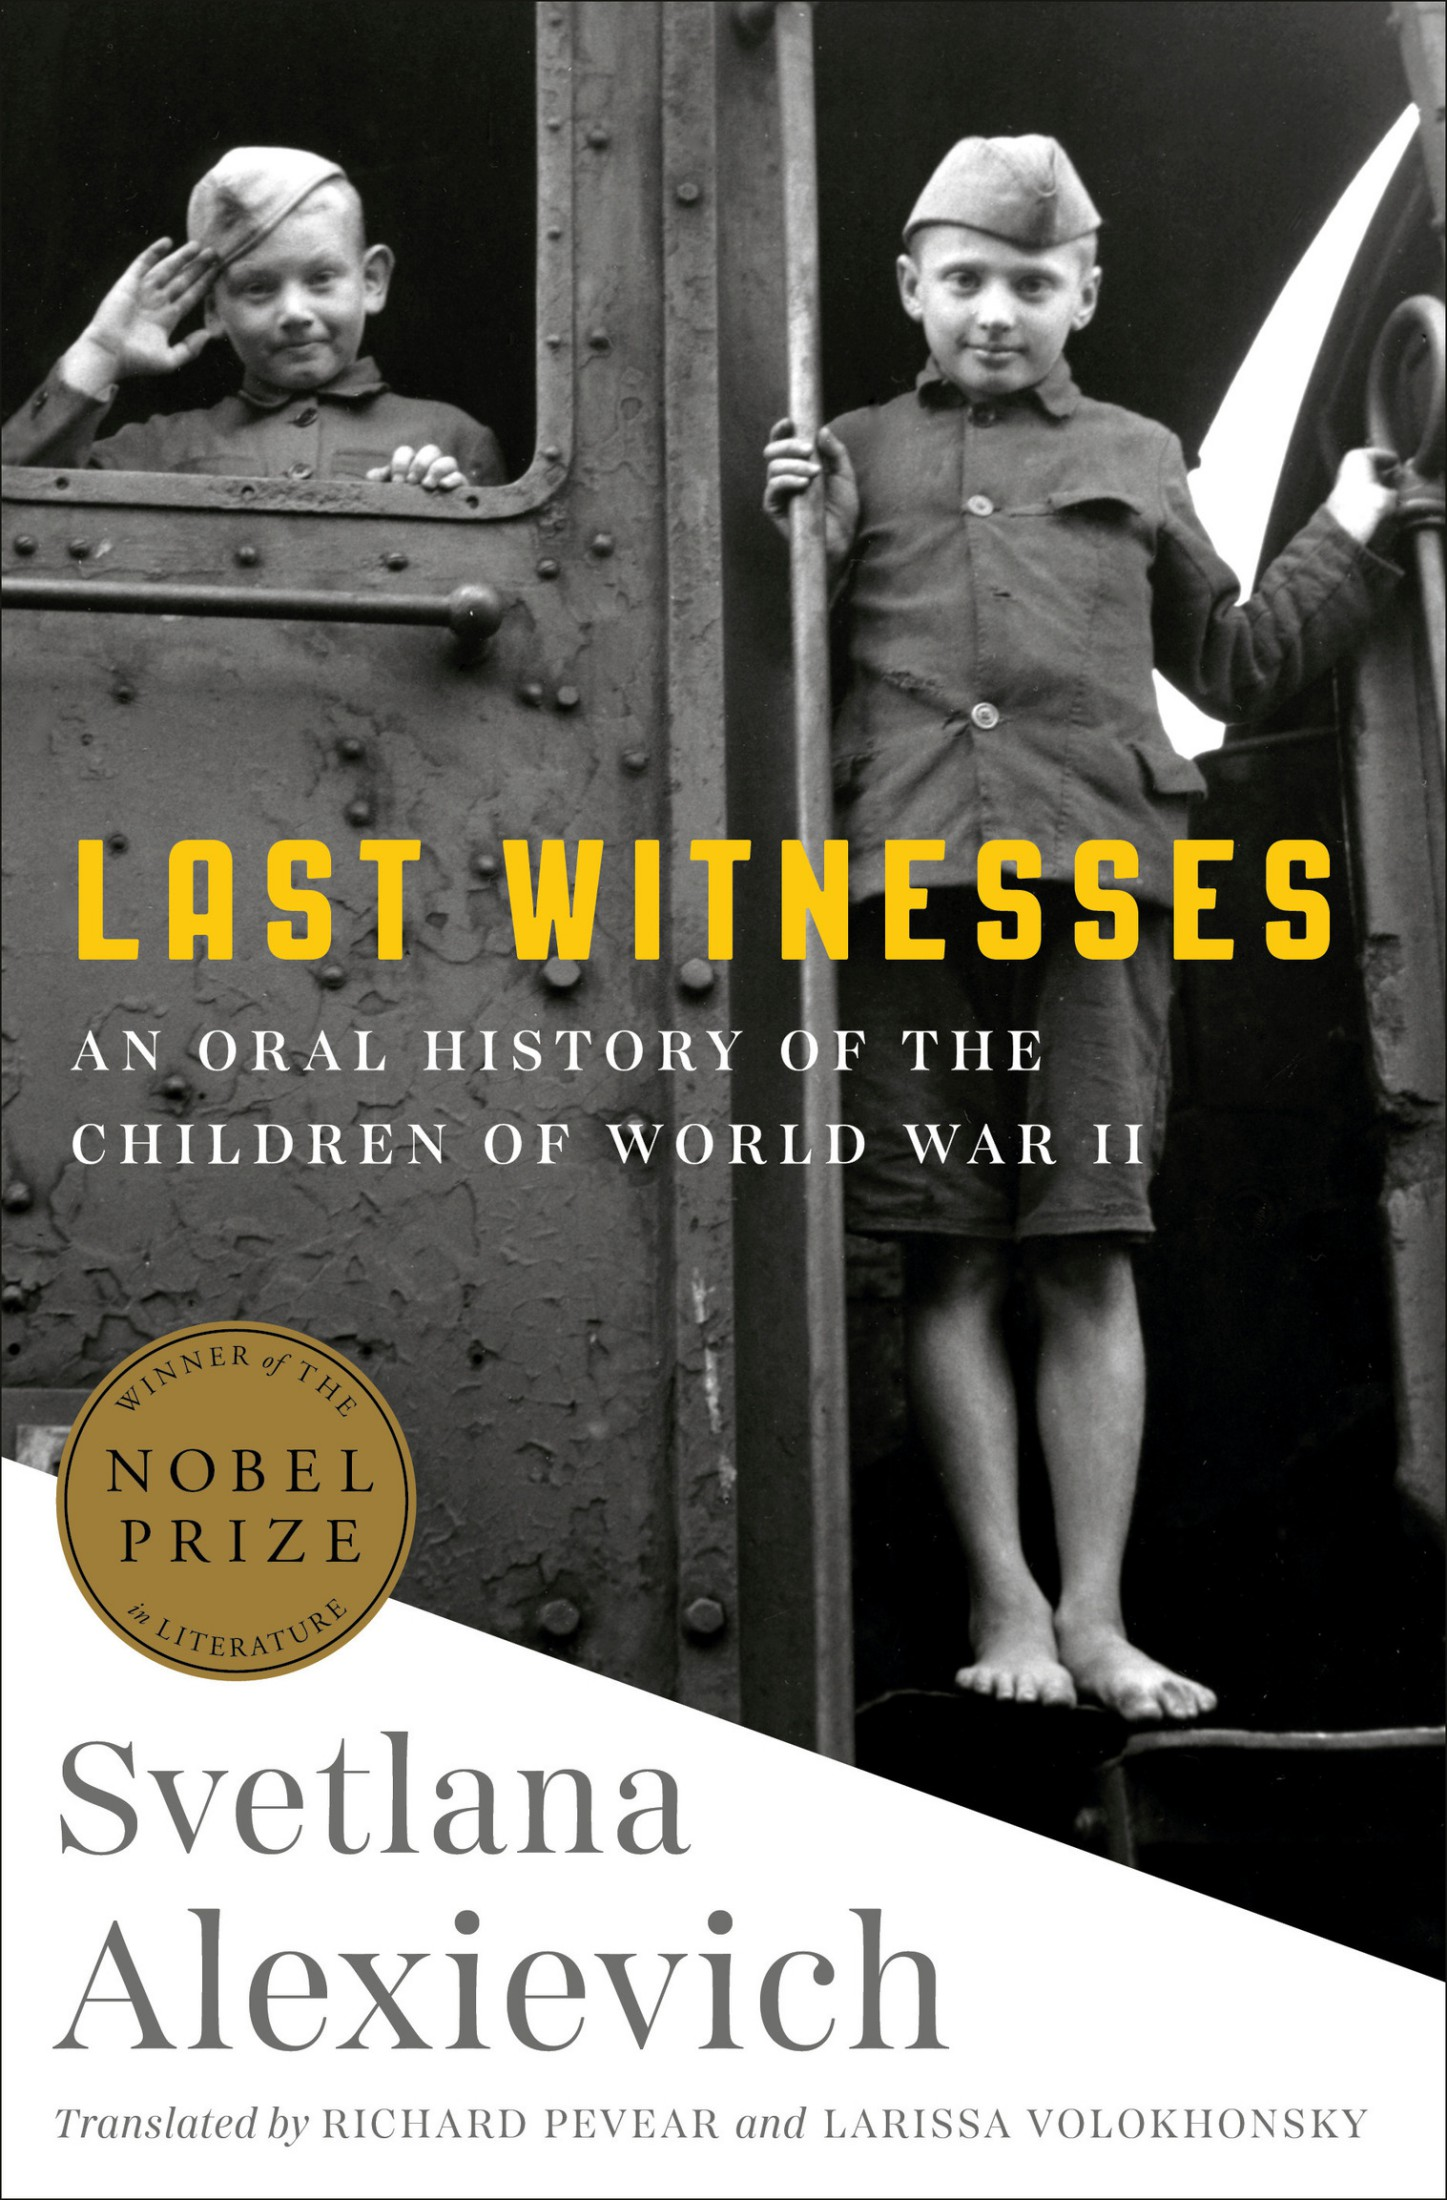 обложка книги Last Witnesses : An Oral History of the Children of World War II (9780399588778)